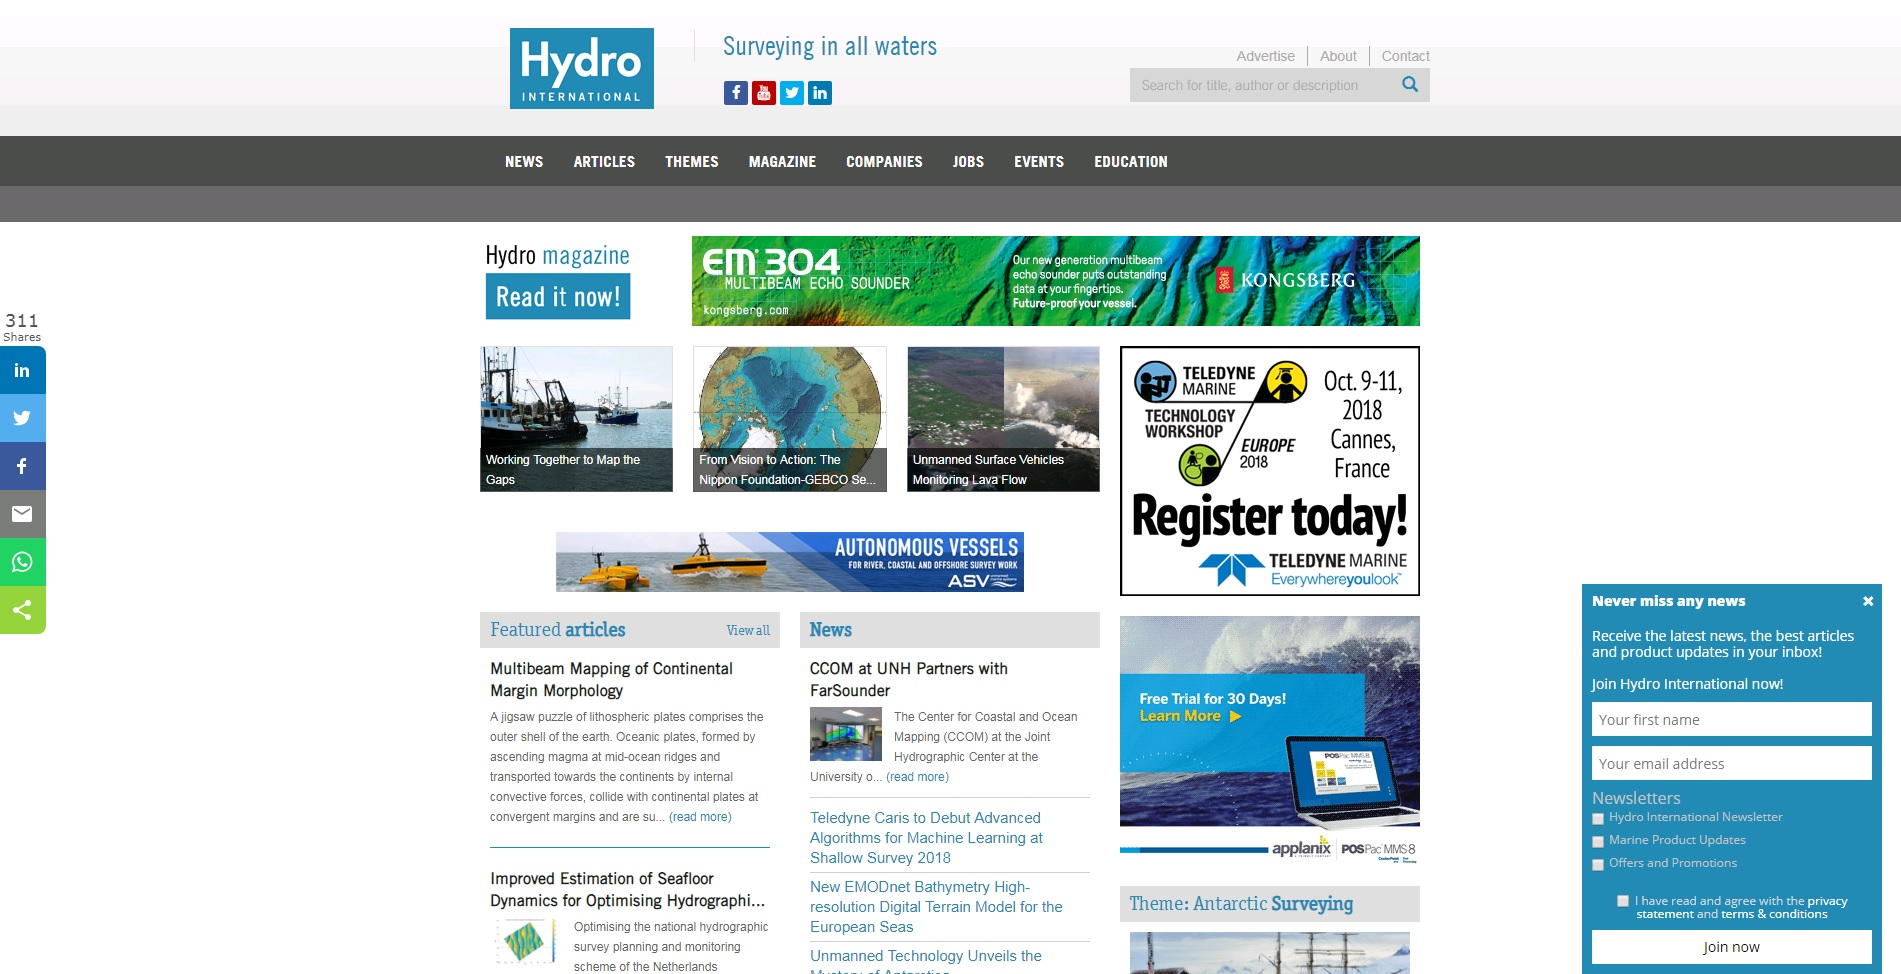 Hydro International homepage slide-in pop-up